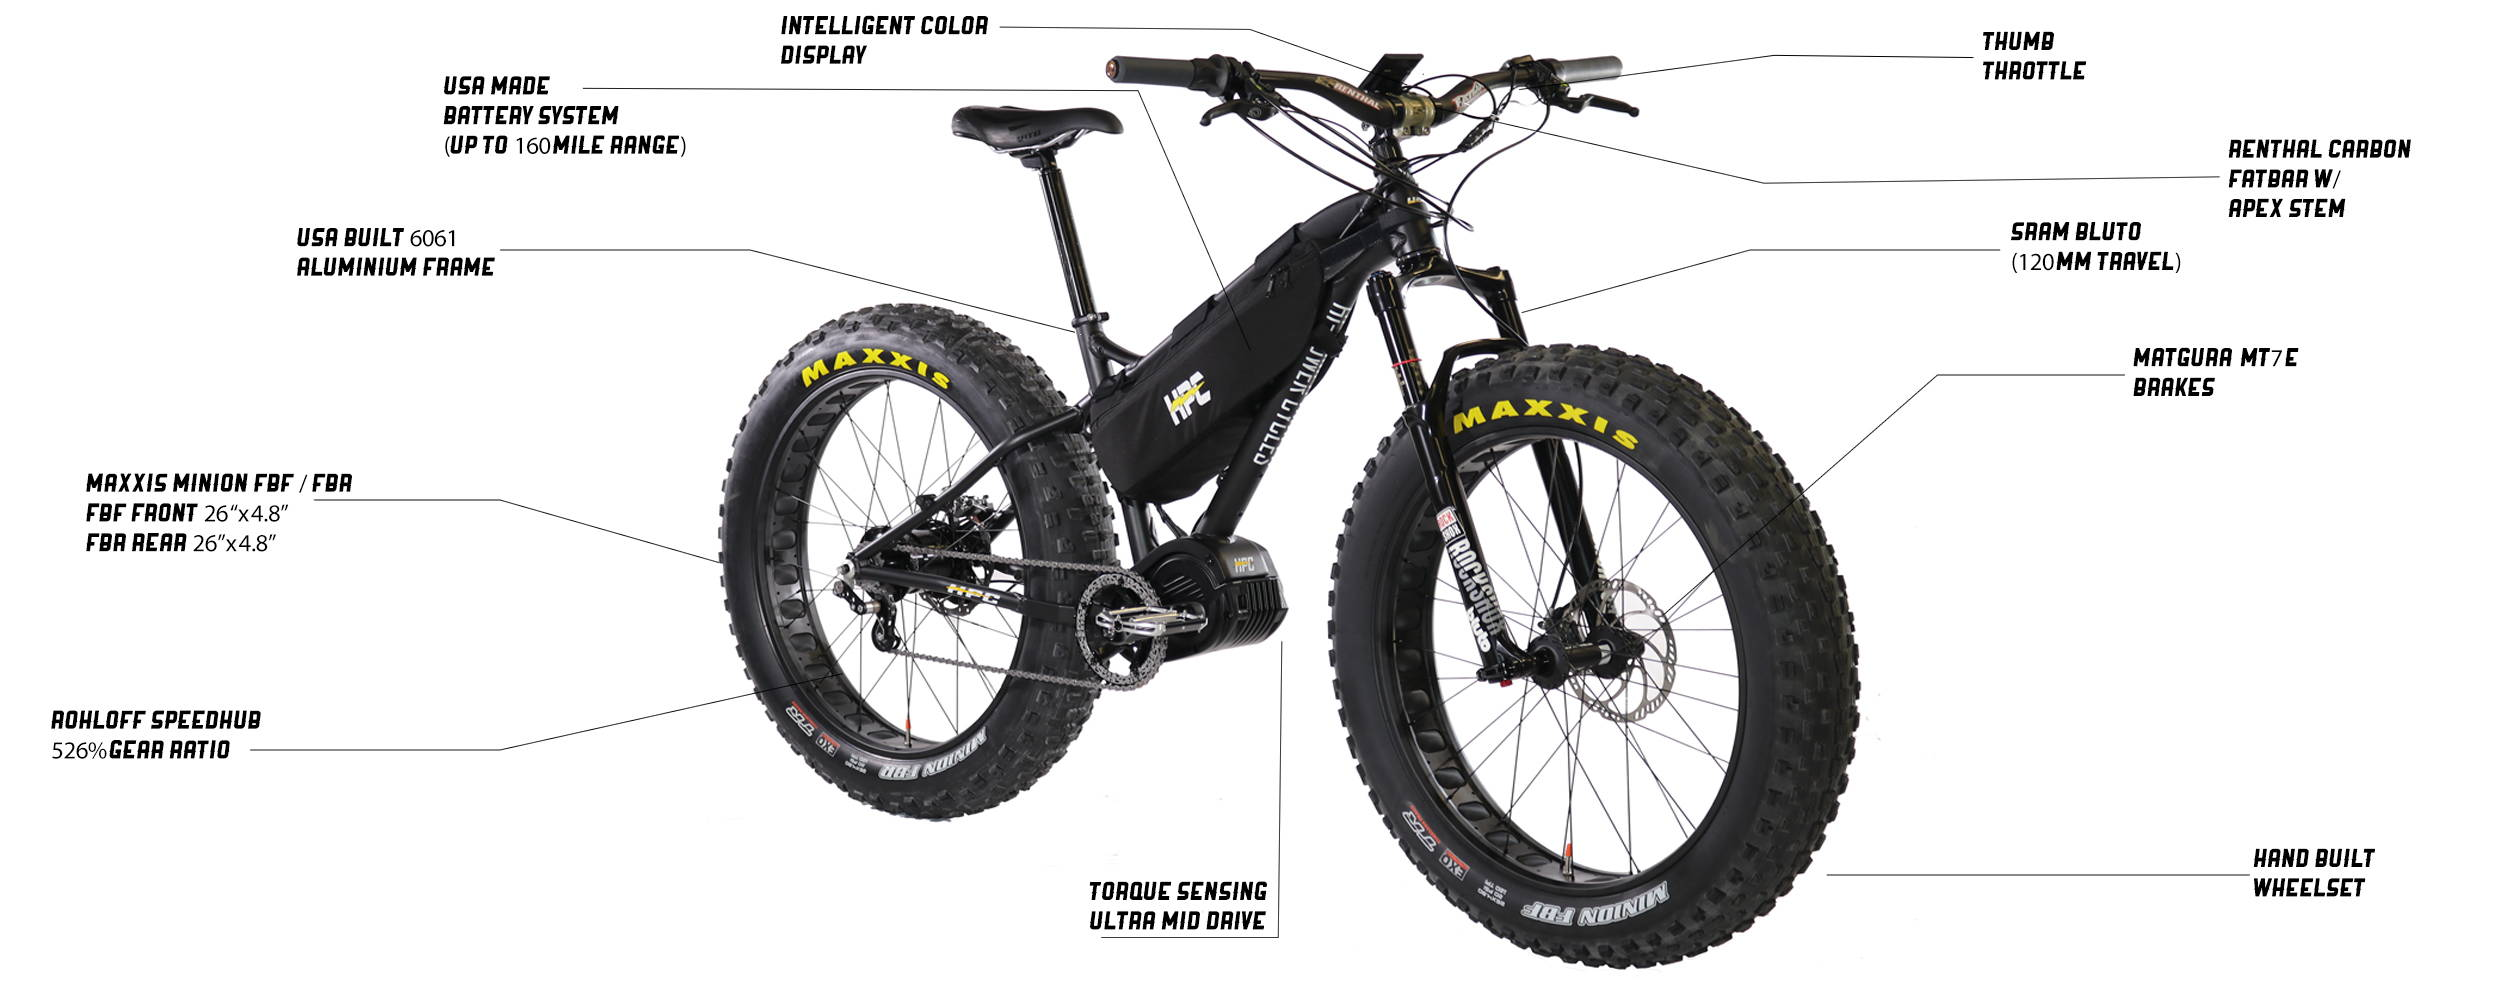 Titan Pro Factory Tuned Fat Electric Bike Hi Power Cycles